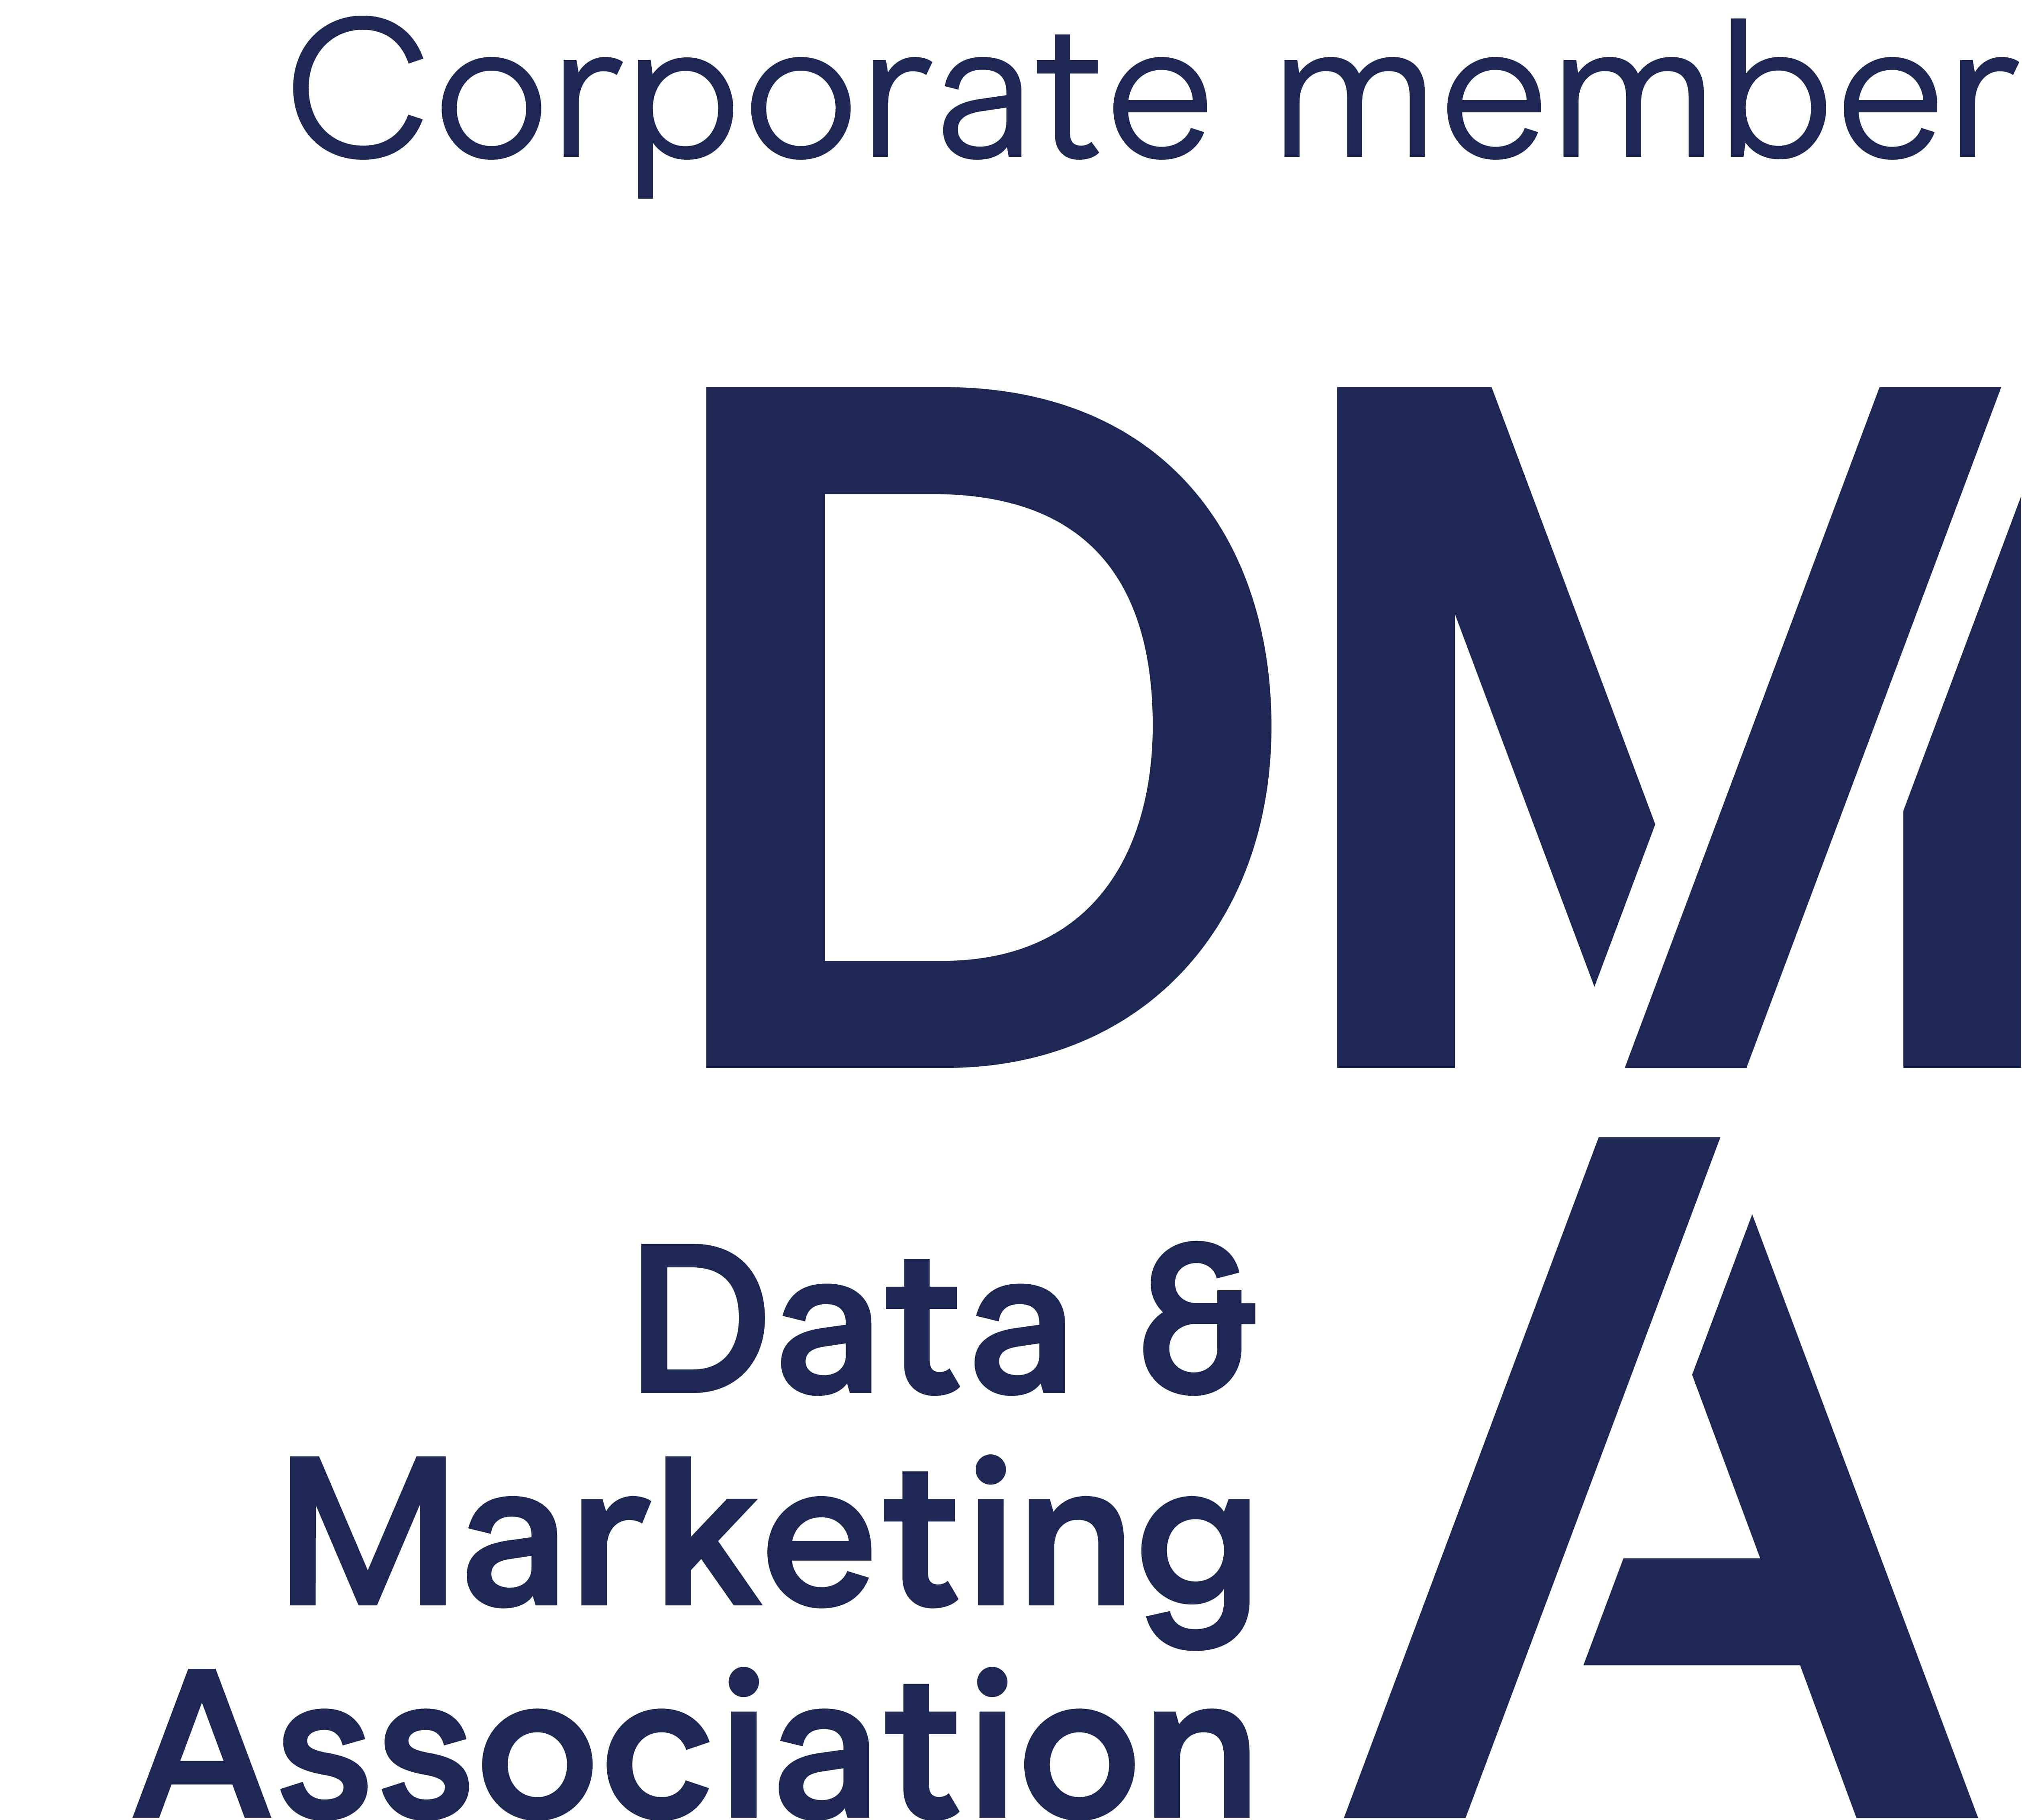 Corporate member of the DMA